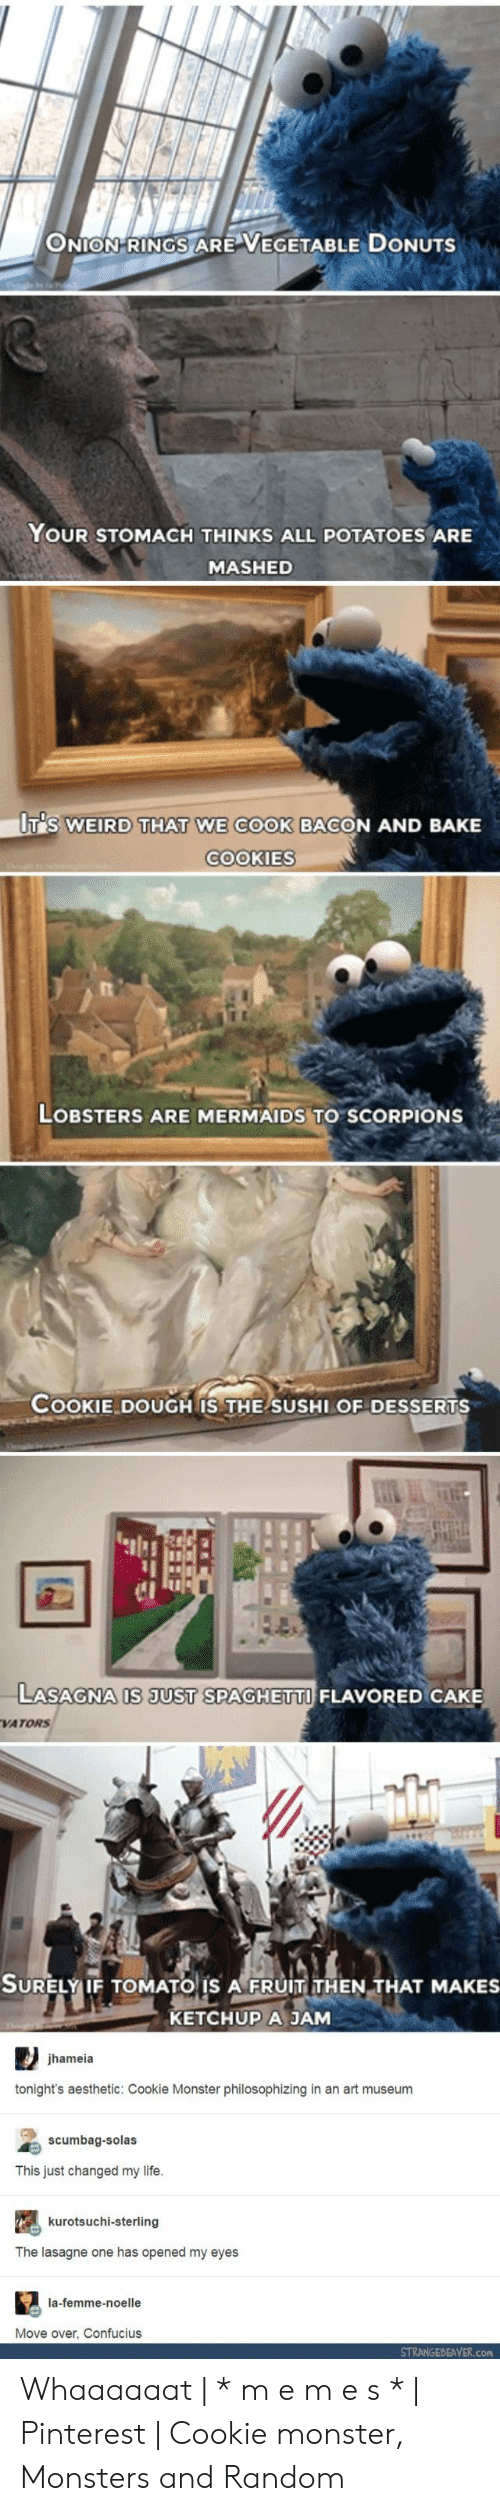 cookie monster: ONION-RINGS ARE VEGETABLE DONUTS  YOUR STOMACH THINKS ALL POTATOES ARE  MASHED  UT'S WEIRD THAT WE COOK BACON AND BAKE  COOKIES  LOBSTERS ARE MERMAIDS TO SCORPIONS  COOKIE DOUGH IS THE SUSHI OF DESSERTS  1I  C1  LASAGNA IS JUST SPAGHETTI FLAVORED CAKE  VATORS  SURELY IF TOMATO IS A FRUIT THEN THAT MAKES  KETCHUP A JAM  SURELYIF TOMATO IS A FRUIT THEN THAT MAKES  jhameia  tonight's aesthetic: Cookie Monster philosophizing in an art museum  scumbag-solas  This just changed my life  kurotsuchi-sterling  The lasagne one has opened my eyes  la-femme-noelle  Move over, Confucius  STRANGEBEAVER.con Whaaaaaat | * m e m e s * | Pinterest | Cookie monster, Monsters and Random